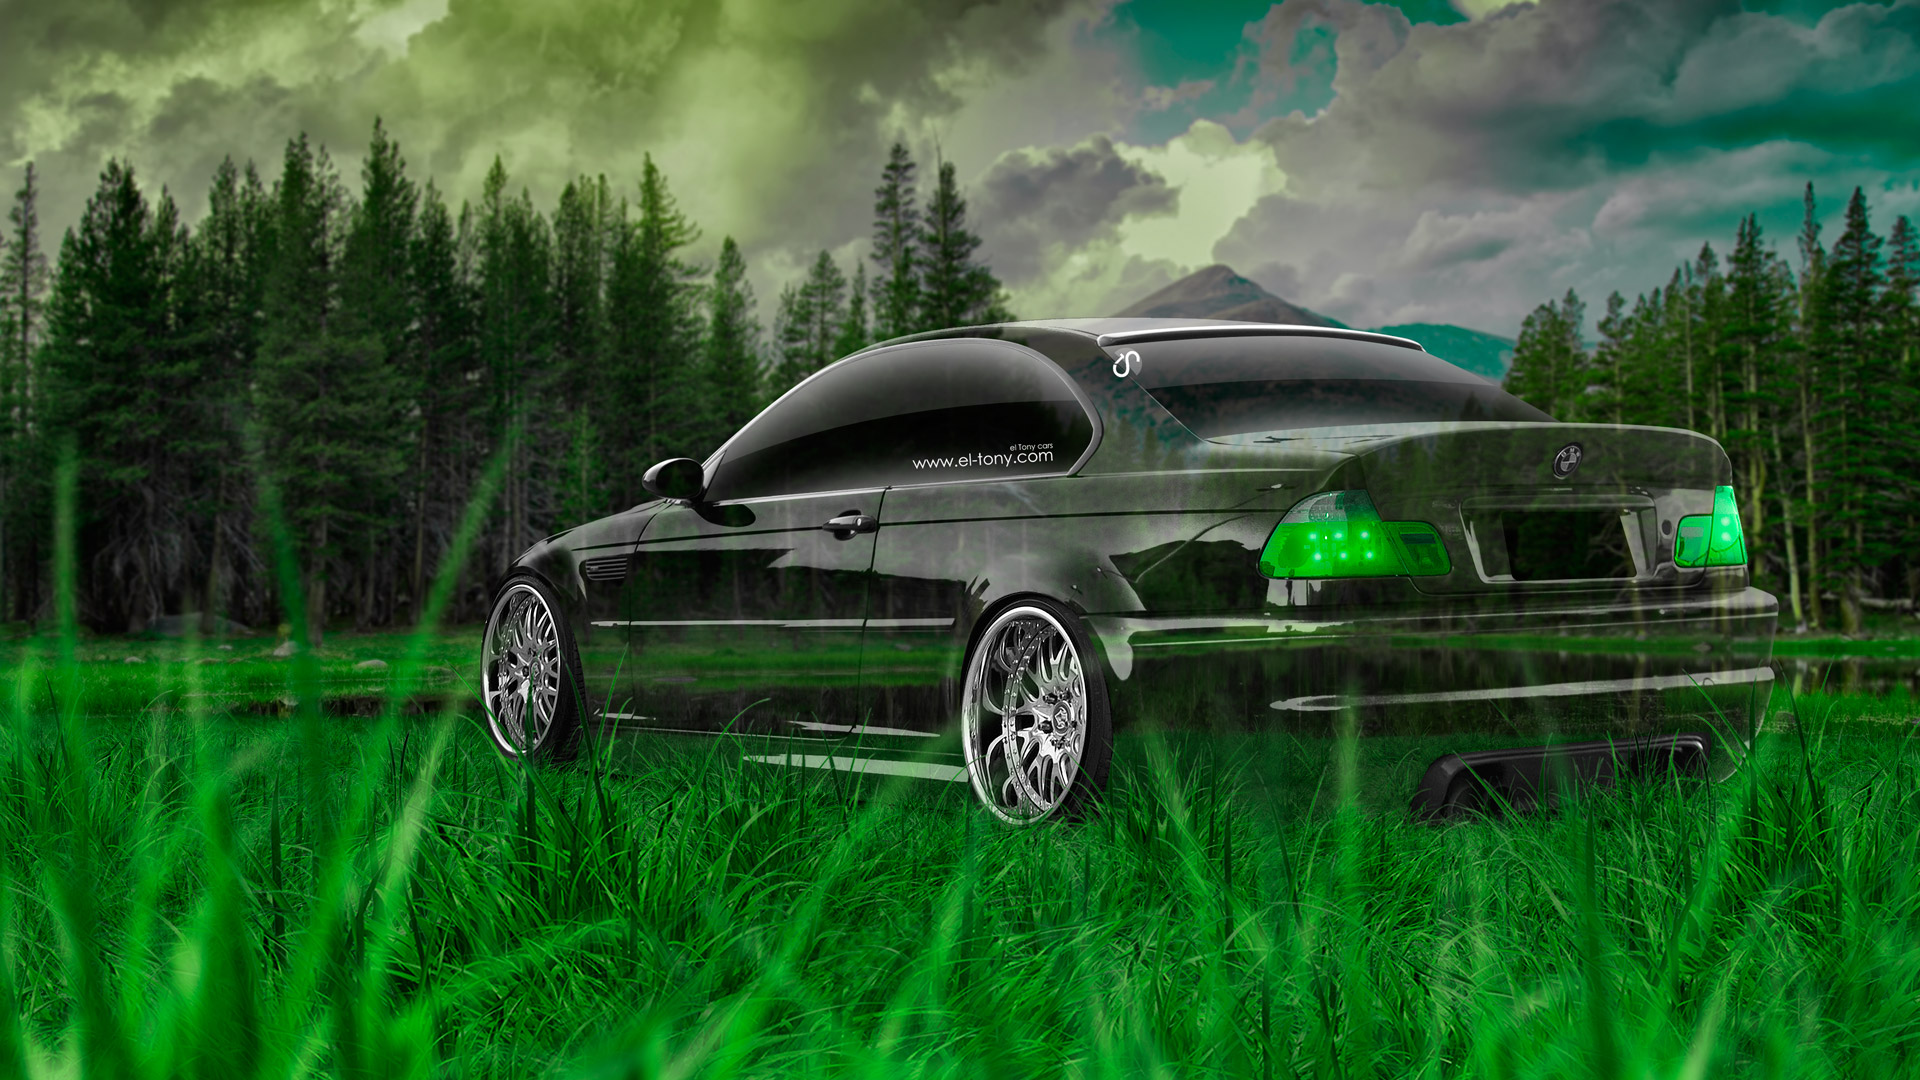 Marvelous BMW M3 E46 Crystal Nature Car 2014 Green